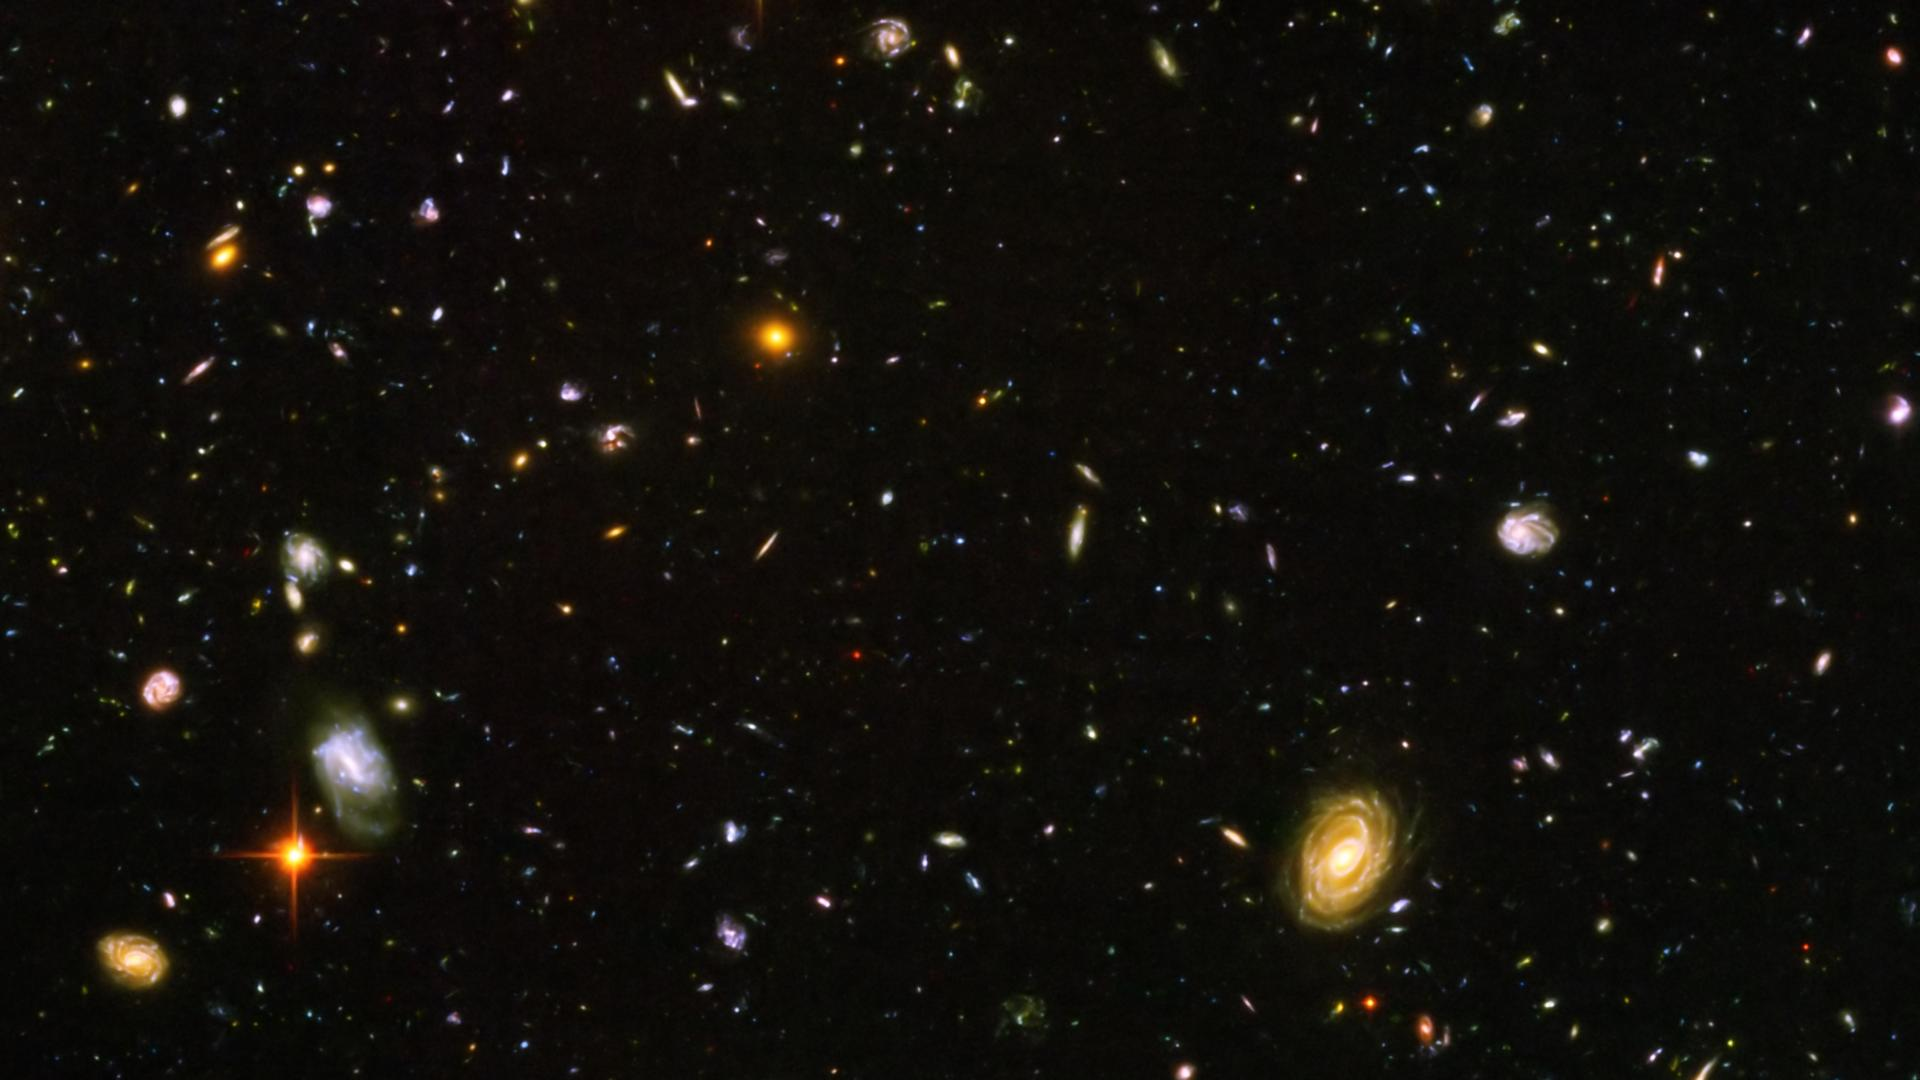 hubble deep field hd wallpaper - photo #13